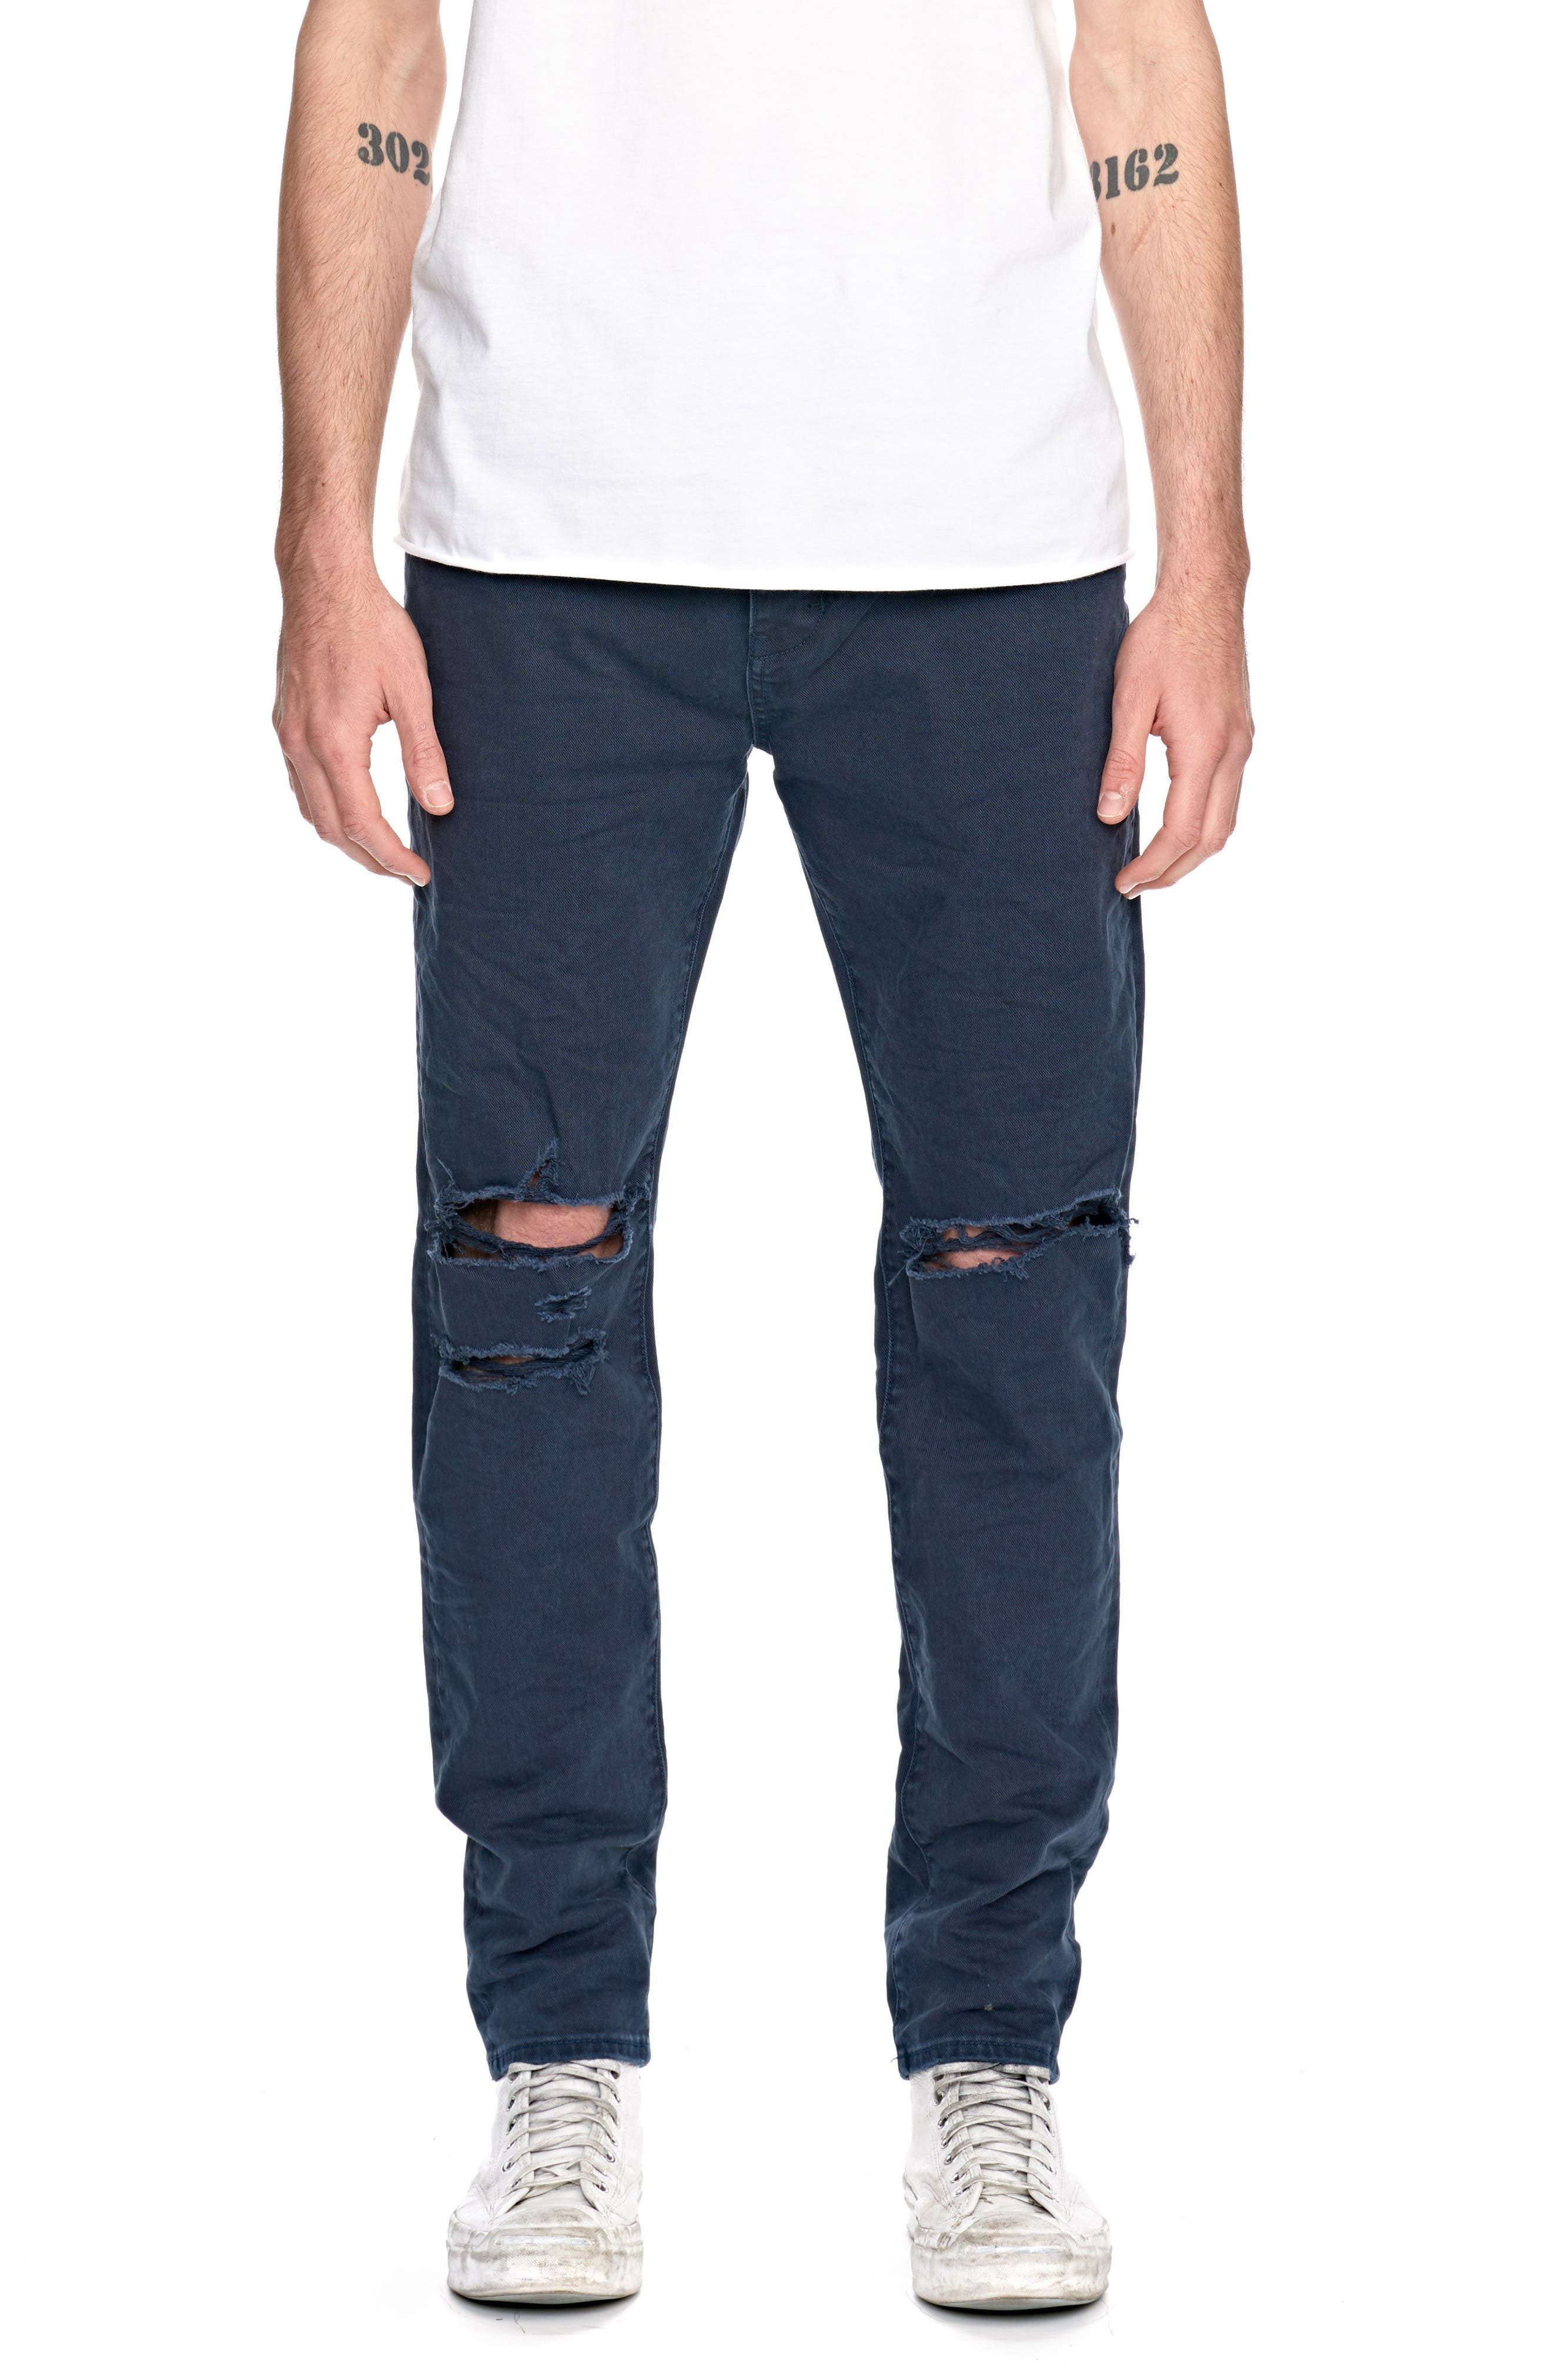 Ray Slouchy Slim Fit Jeans,                             Main thumbnail 1, color,                             406